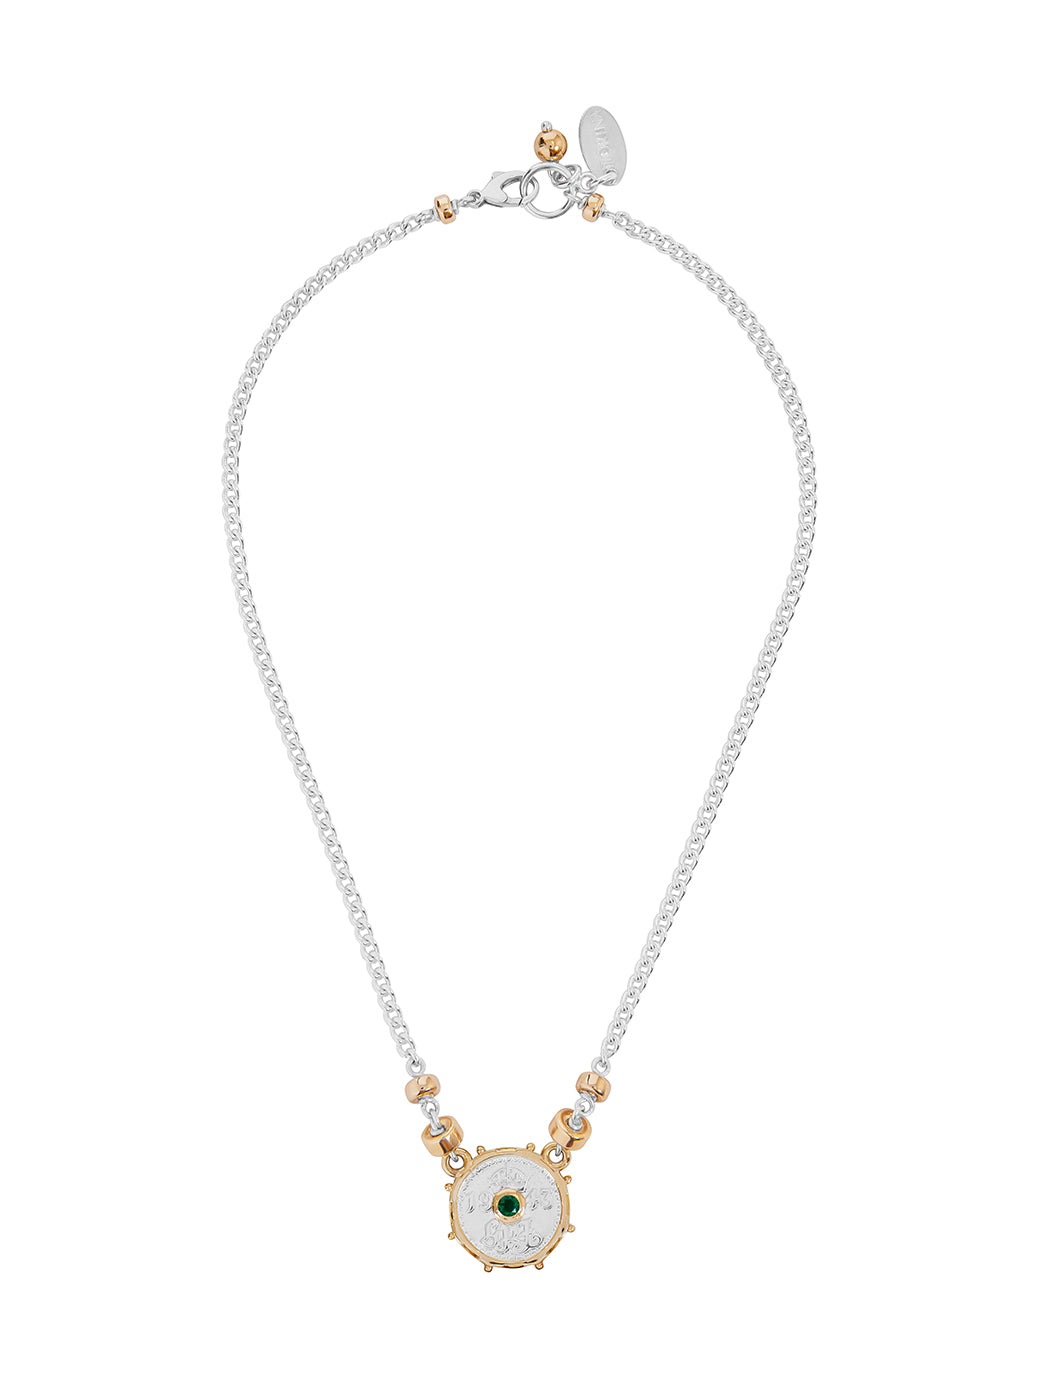 Fiorina Jewellery Joy Necklace Emerald